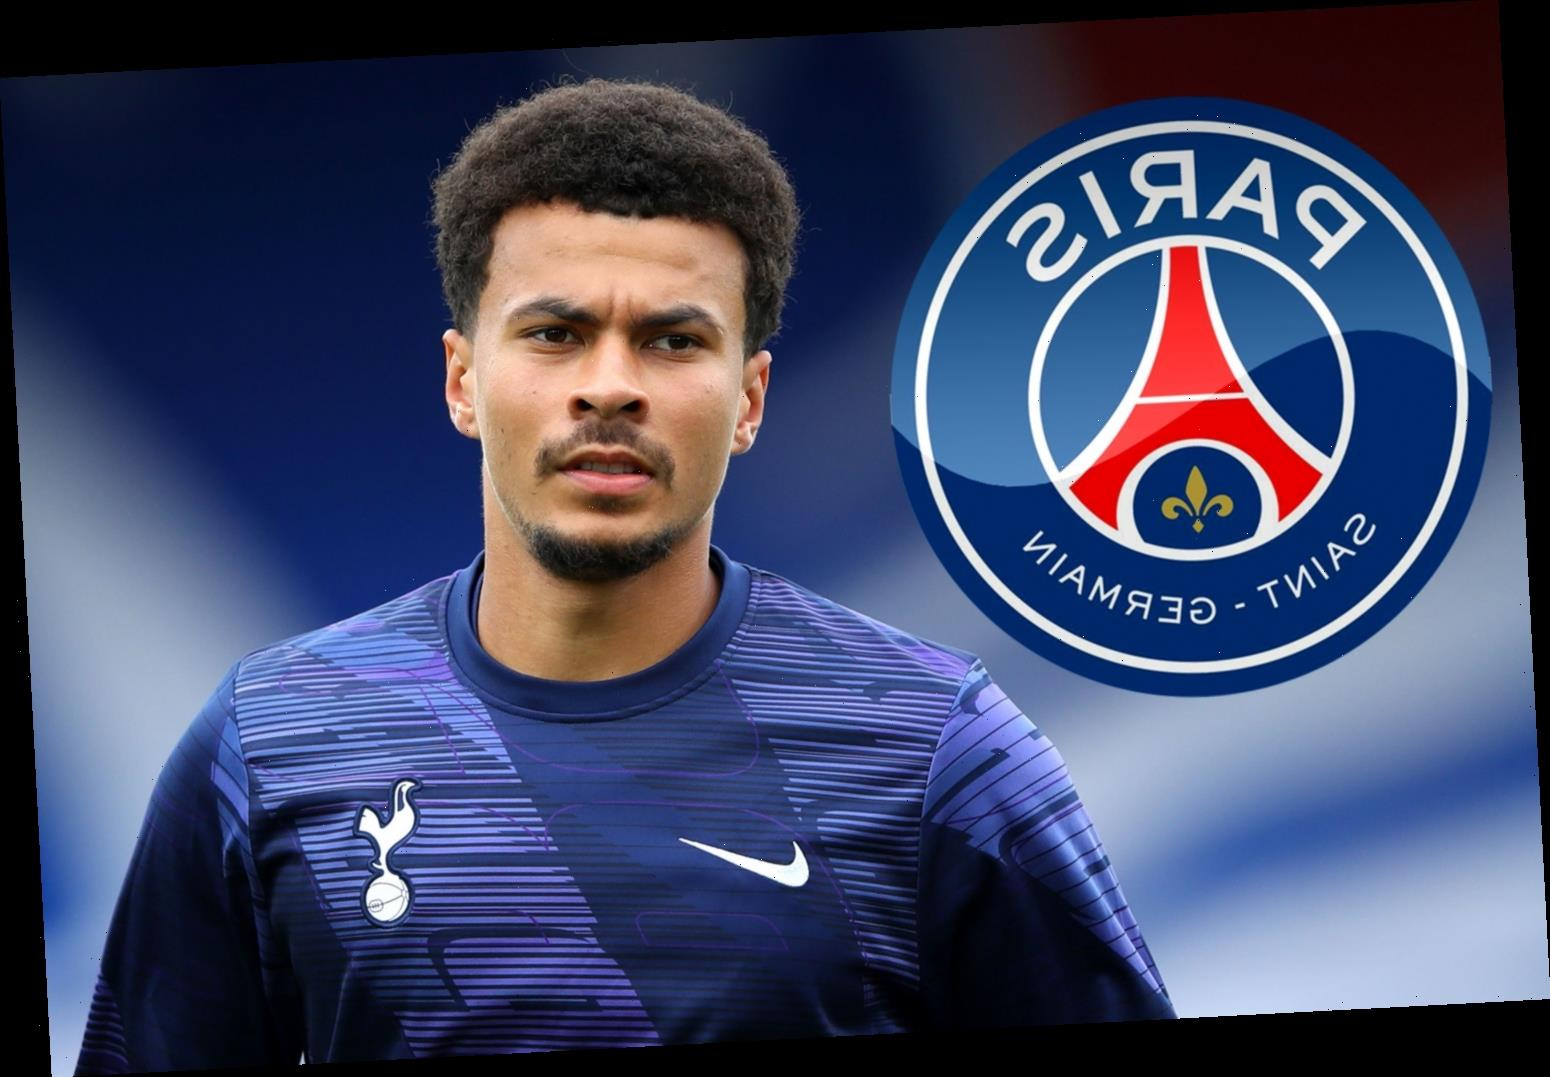 PSG in talks to sign Dele Alli on loan transfer with option to buy with 'Tottenham chief Levy considering accepting'